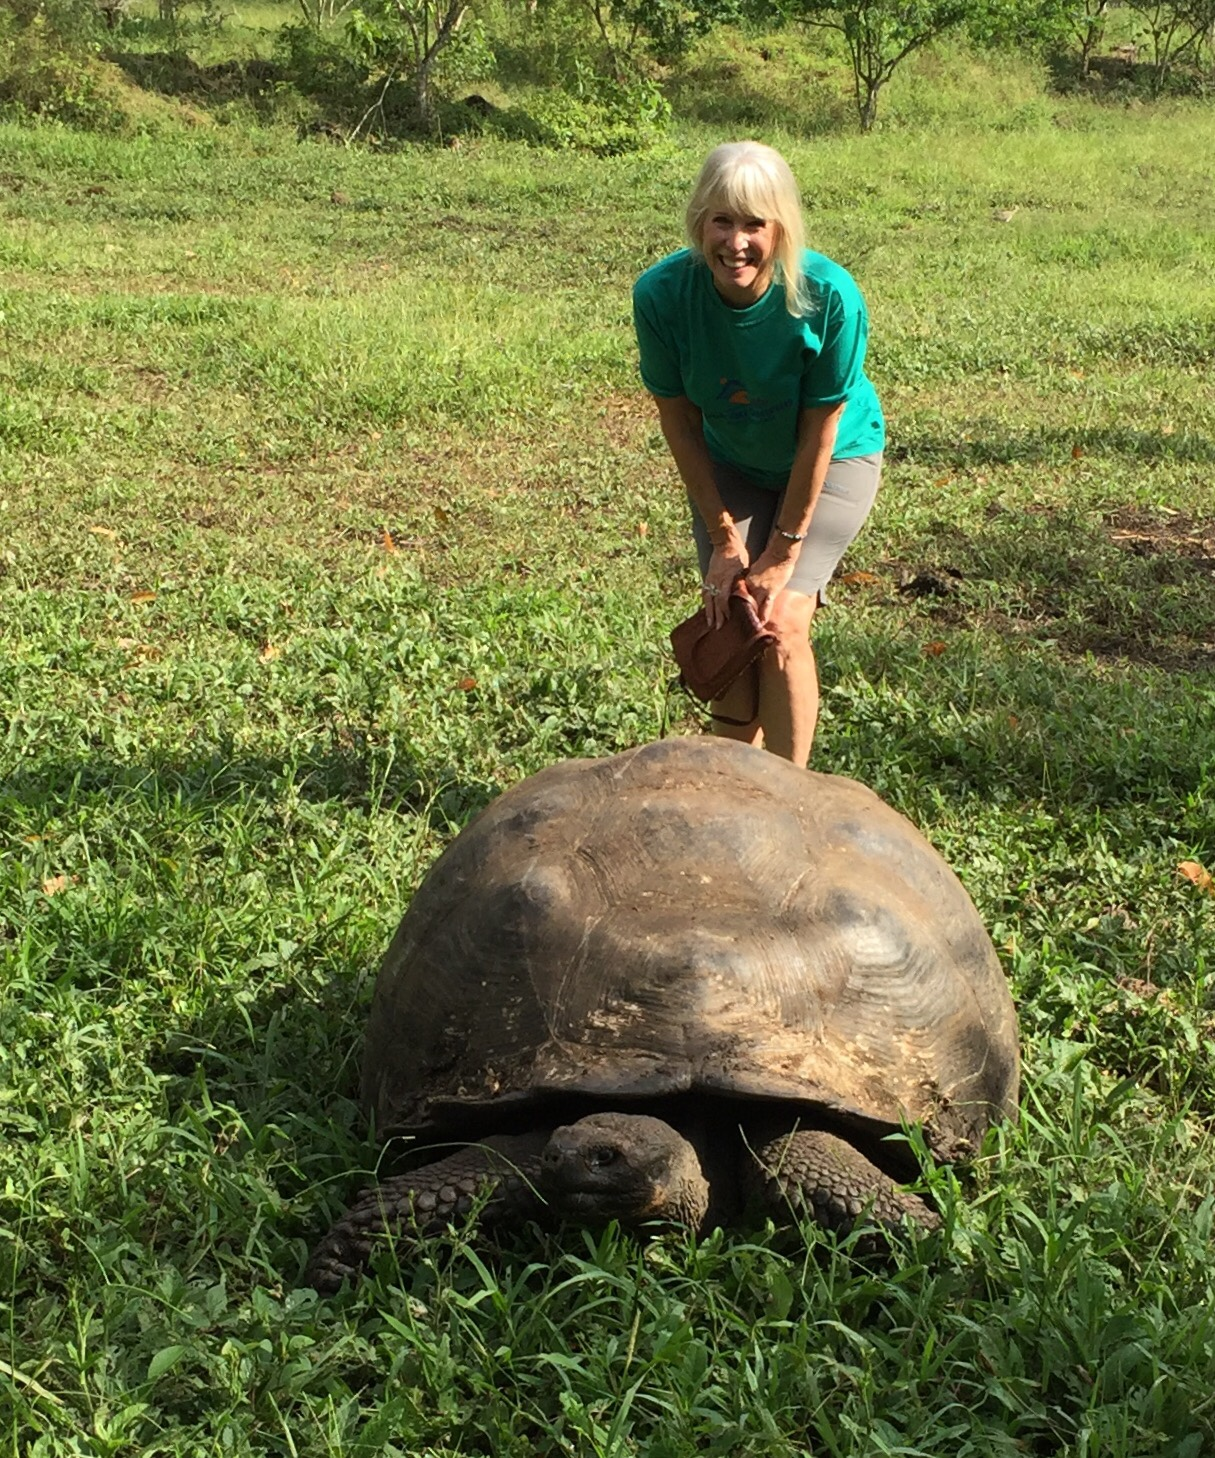 The giant Galapagos tortoise now, pictured in the wild with me above, has a chance of surviving since its native habitat is now mostly free of invasive goats. Non-native goats decimated native forests on several islands in the Galapagos.